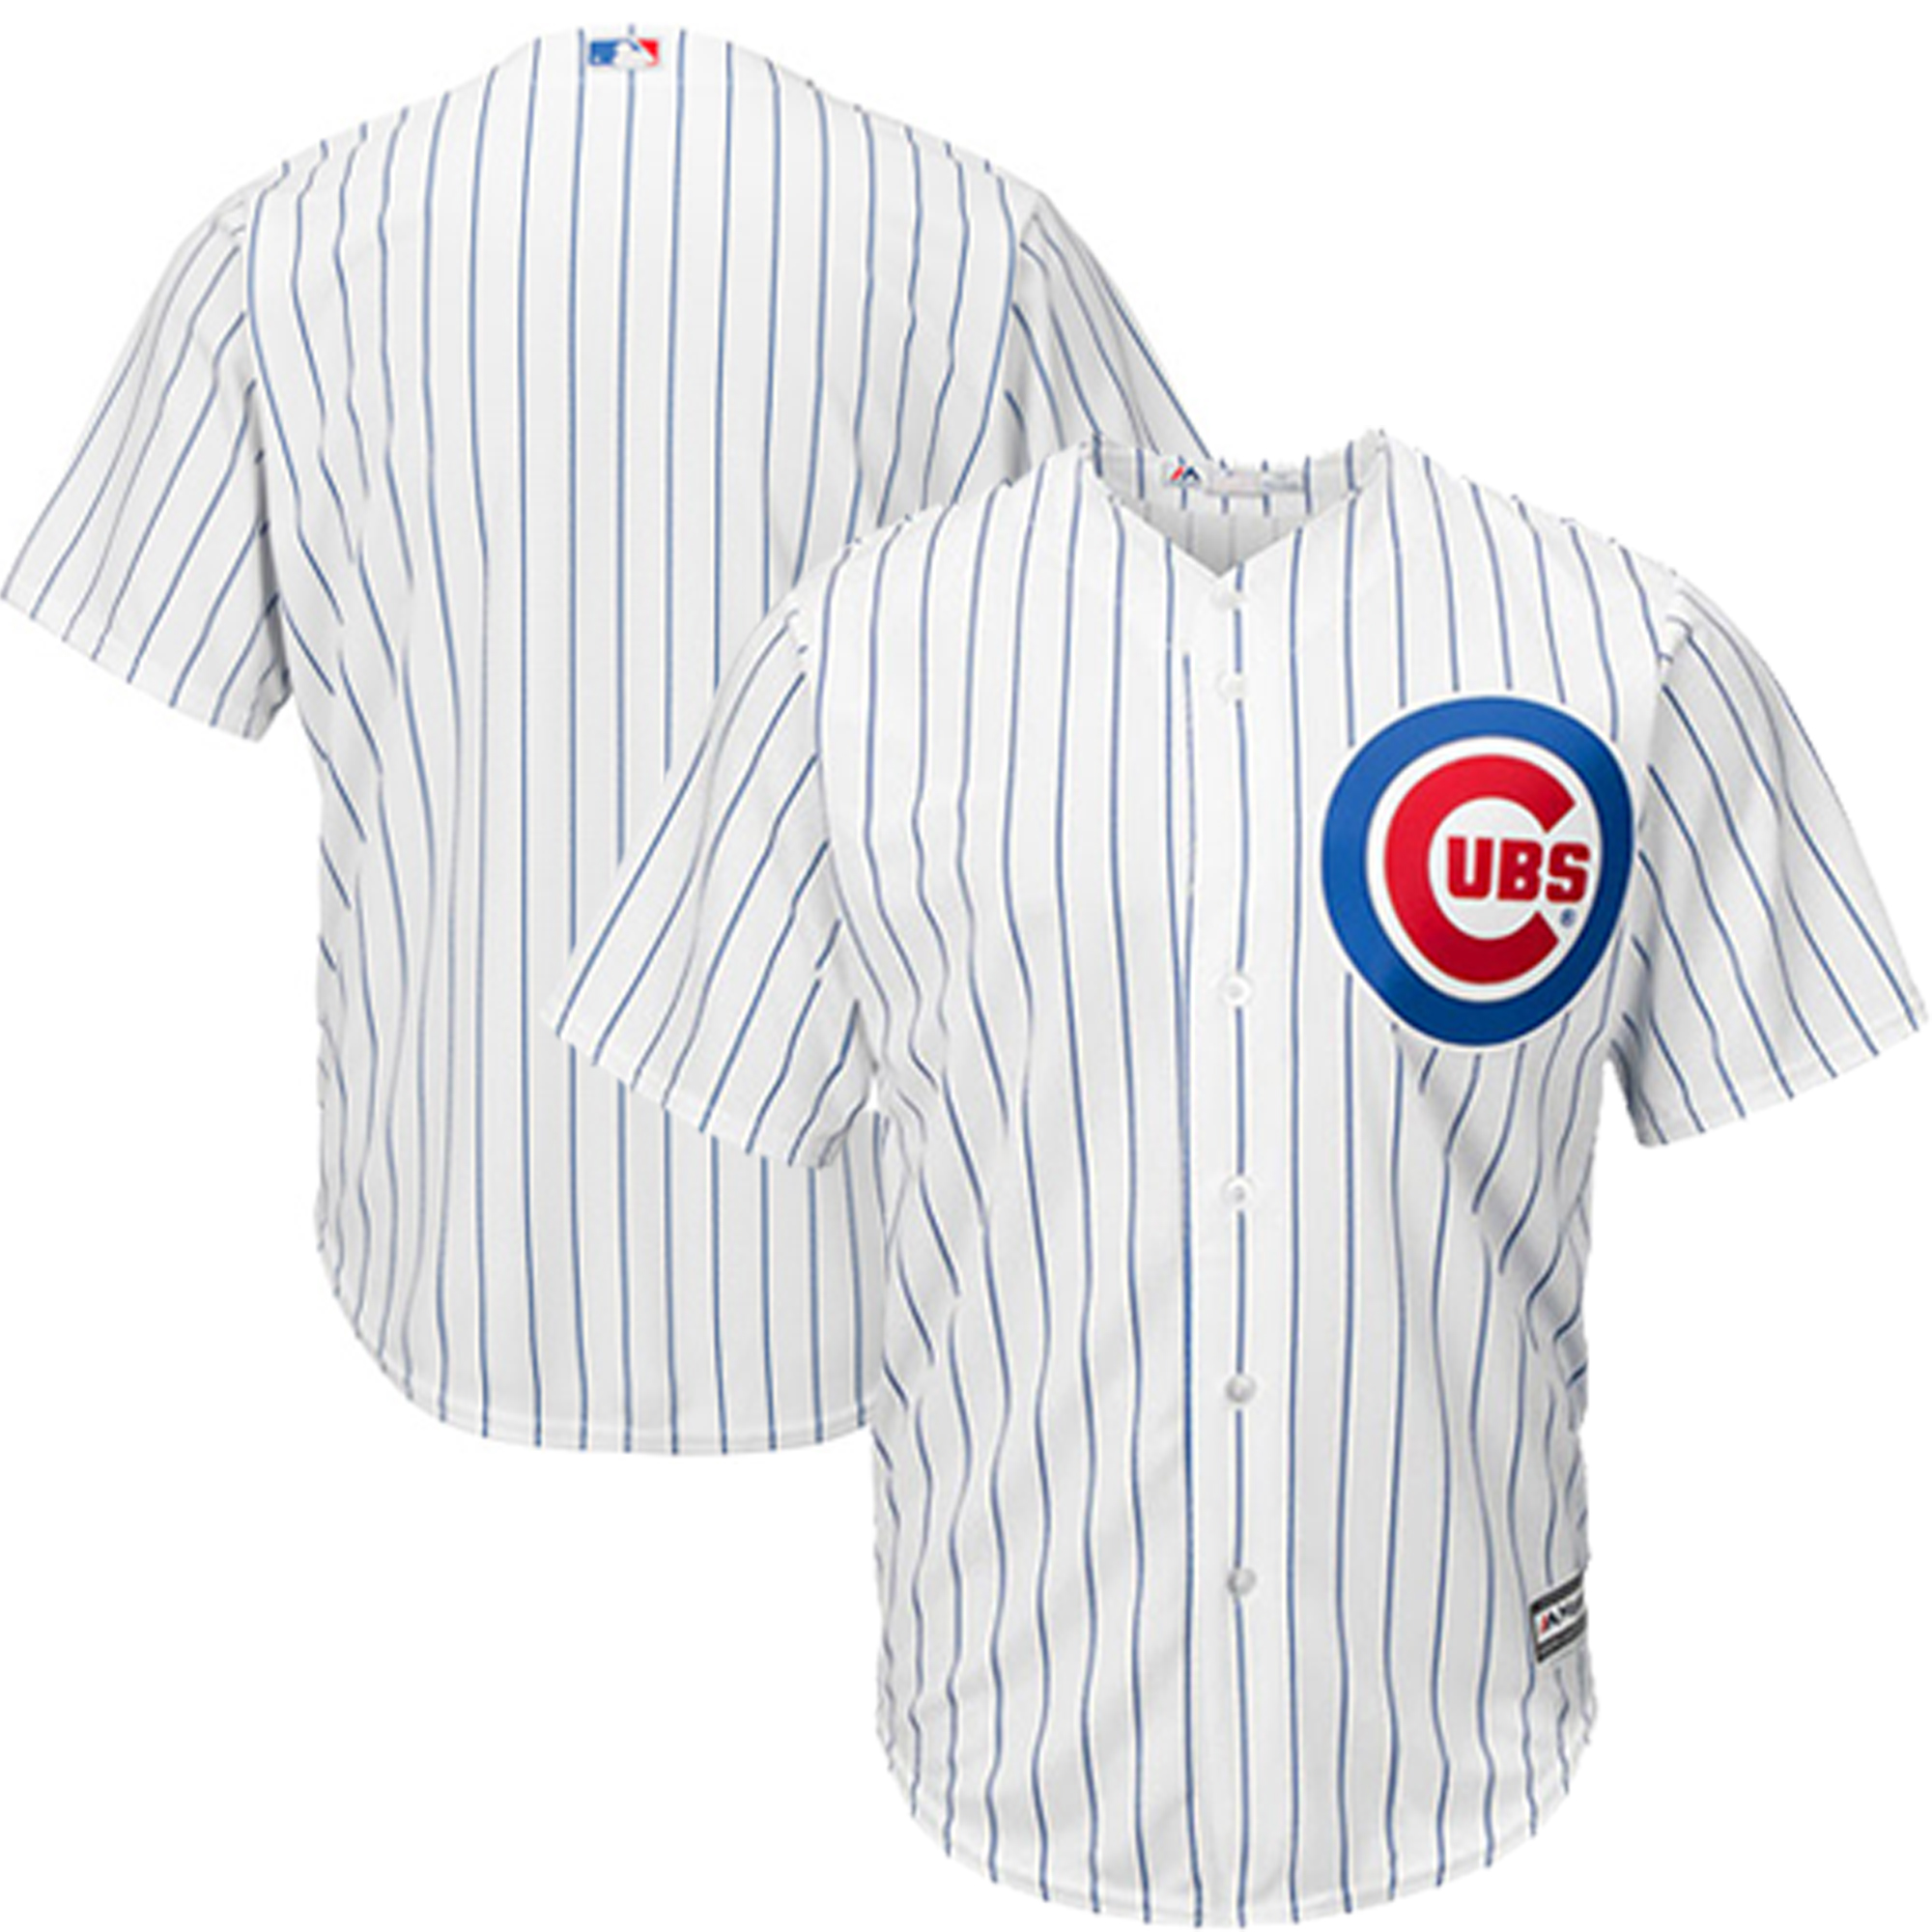 Chicago Cubs Majestic Official Cool Base Jersey - White